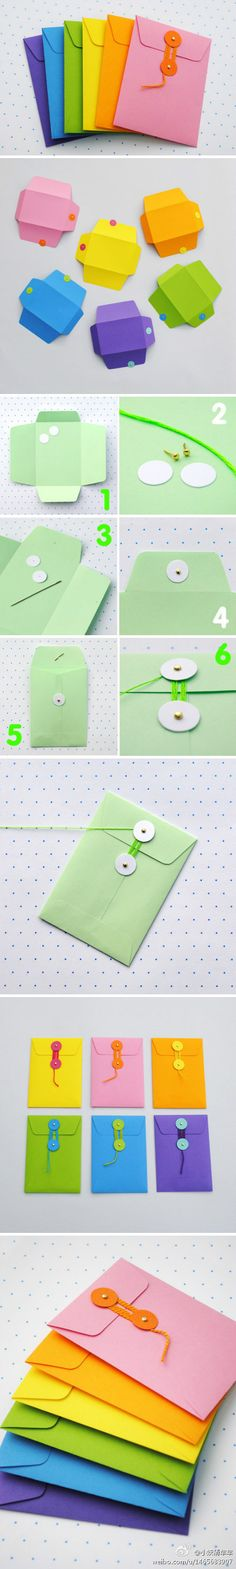 New Origami Bag Diy Paper Crafts Ideas Diy And Crafts, Arts And Crafts, Paper Crafts, Easy Crafts, Foam Crafts, Diy Projects To Try, Craft Projects, Papier Diy, Diy Envelope